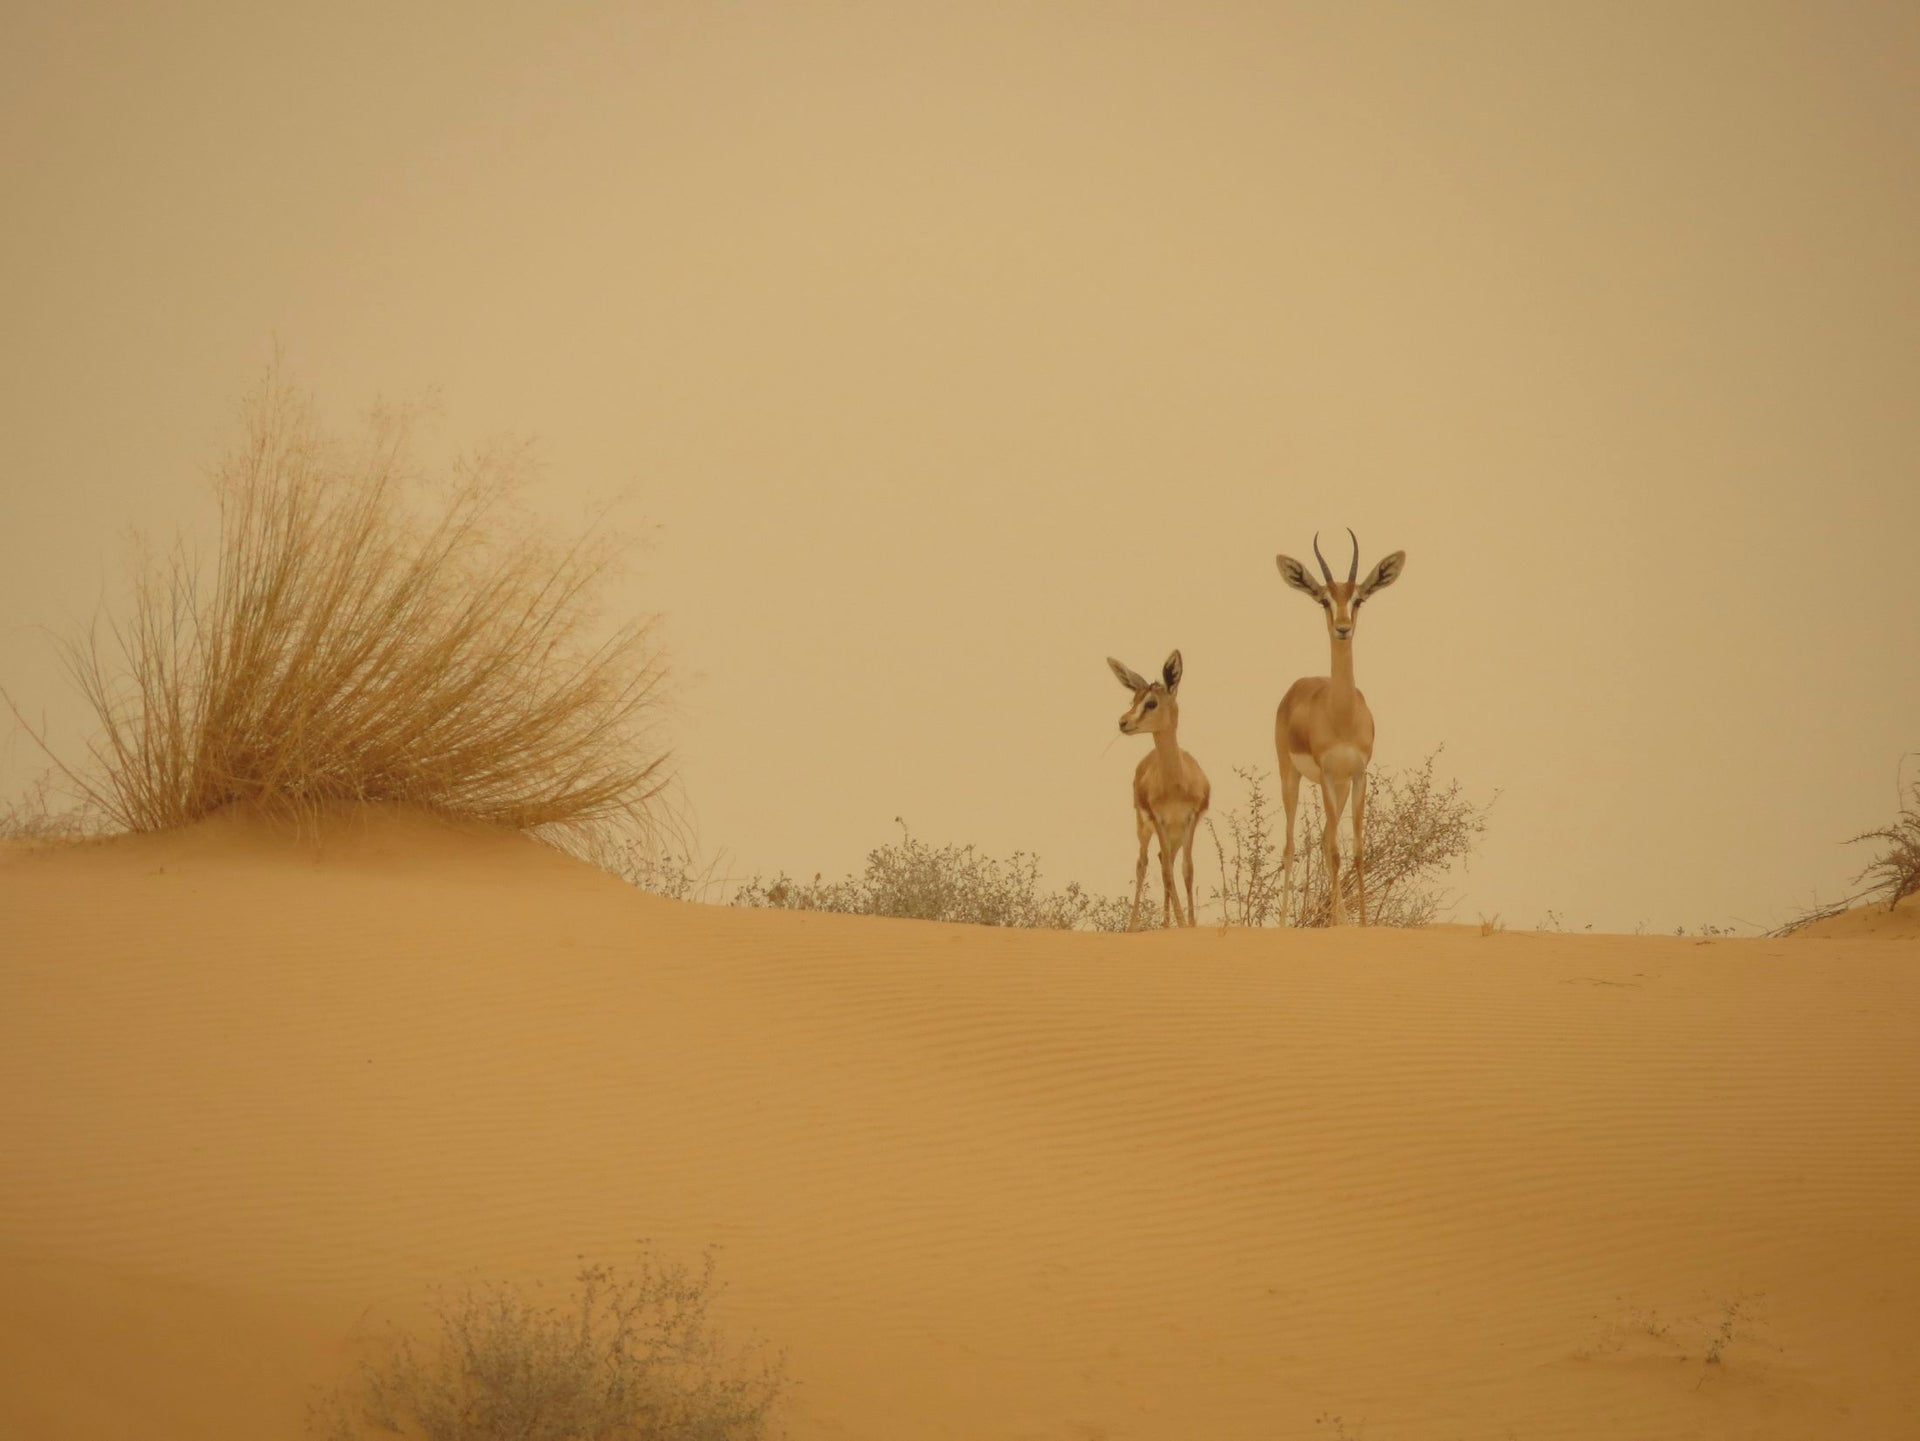 Negev doe with fawn during a dust storm, near Nitzana, September 2015 (First Prize in Mammals category).